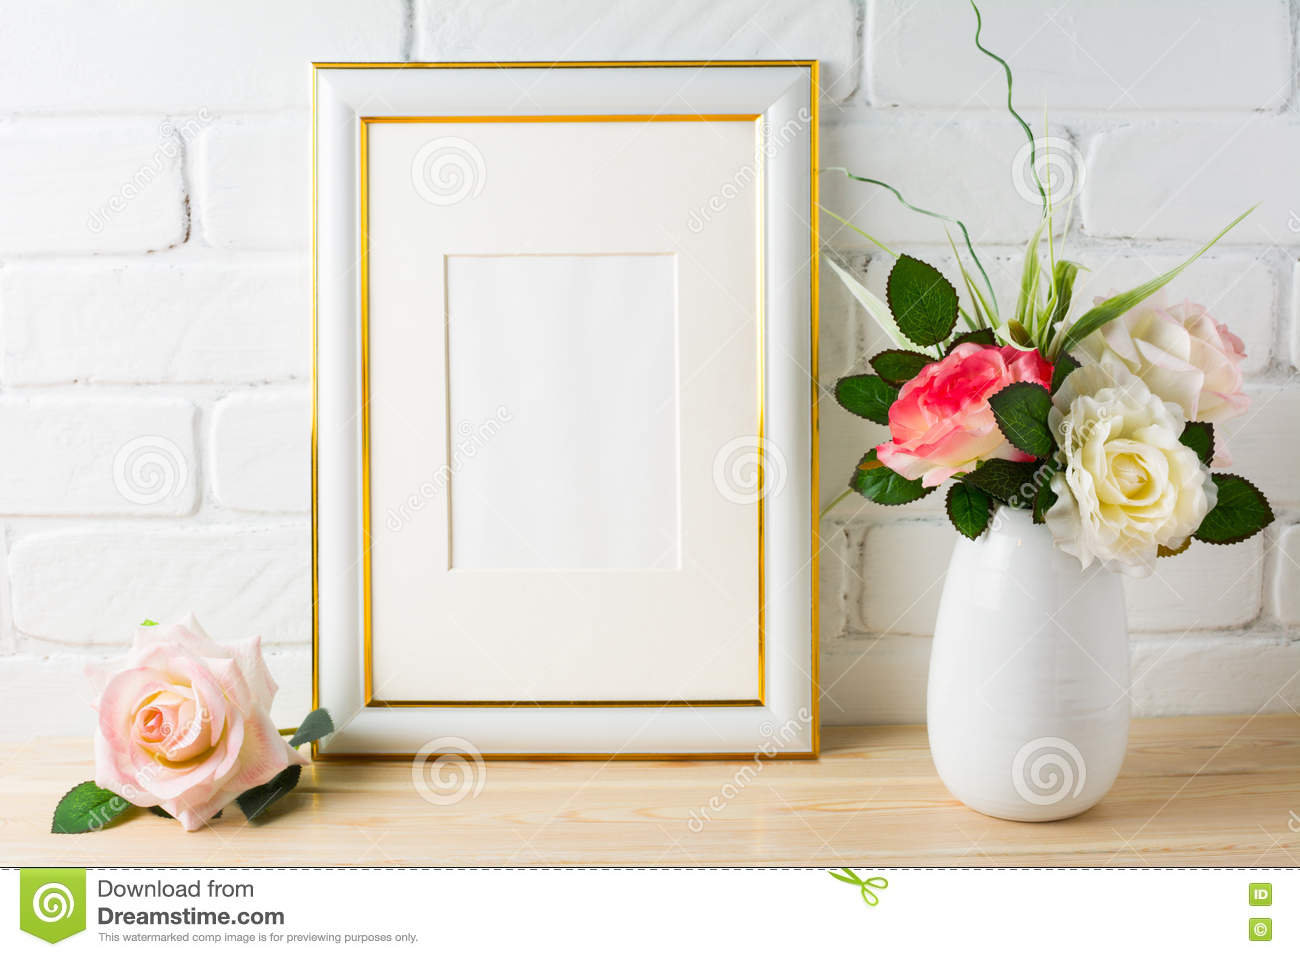 3c6b47e80f15 White Frame Mockup On Brick Wall With Roses Stock Photo - Image of ...